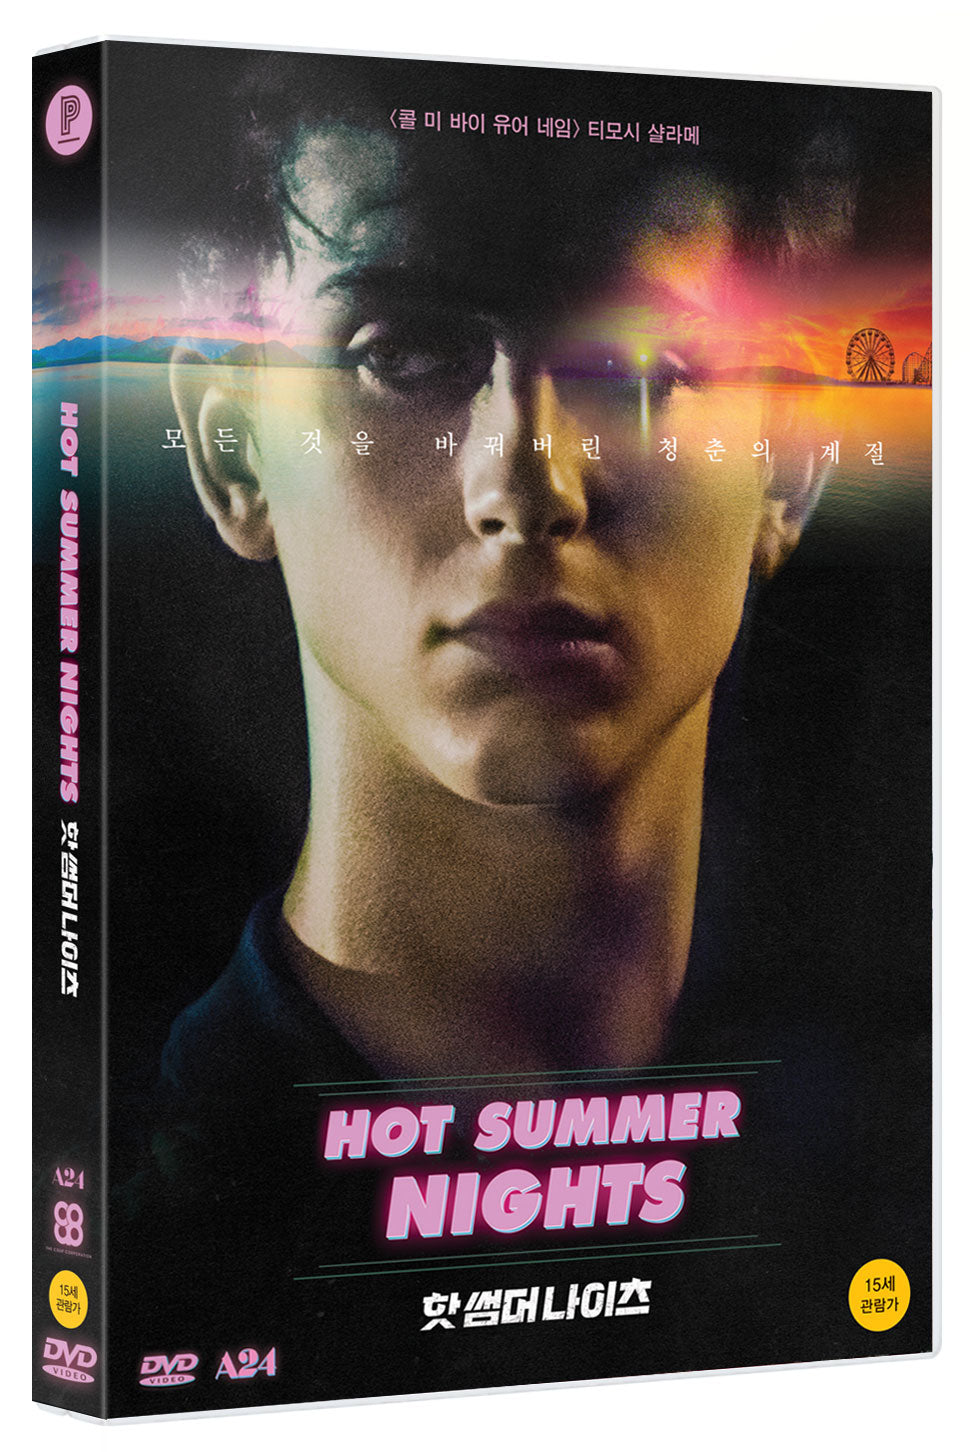 HOT SUMMER NIGHTS DVD